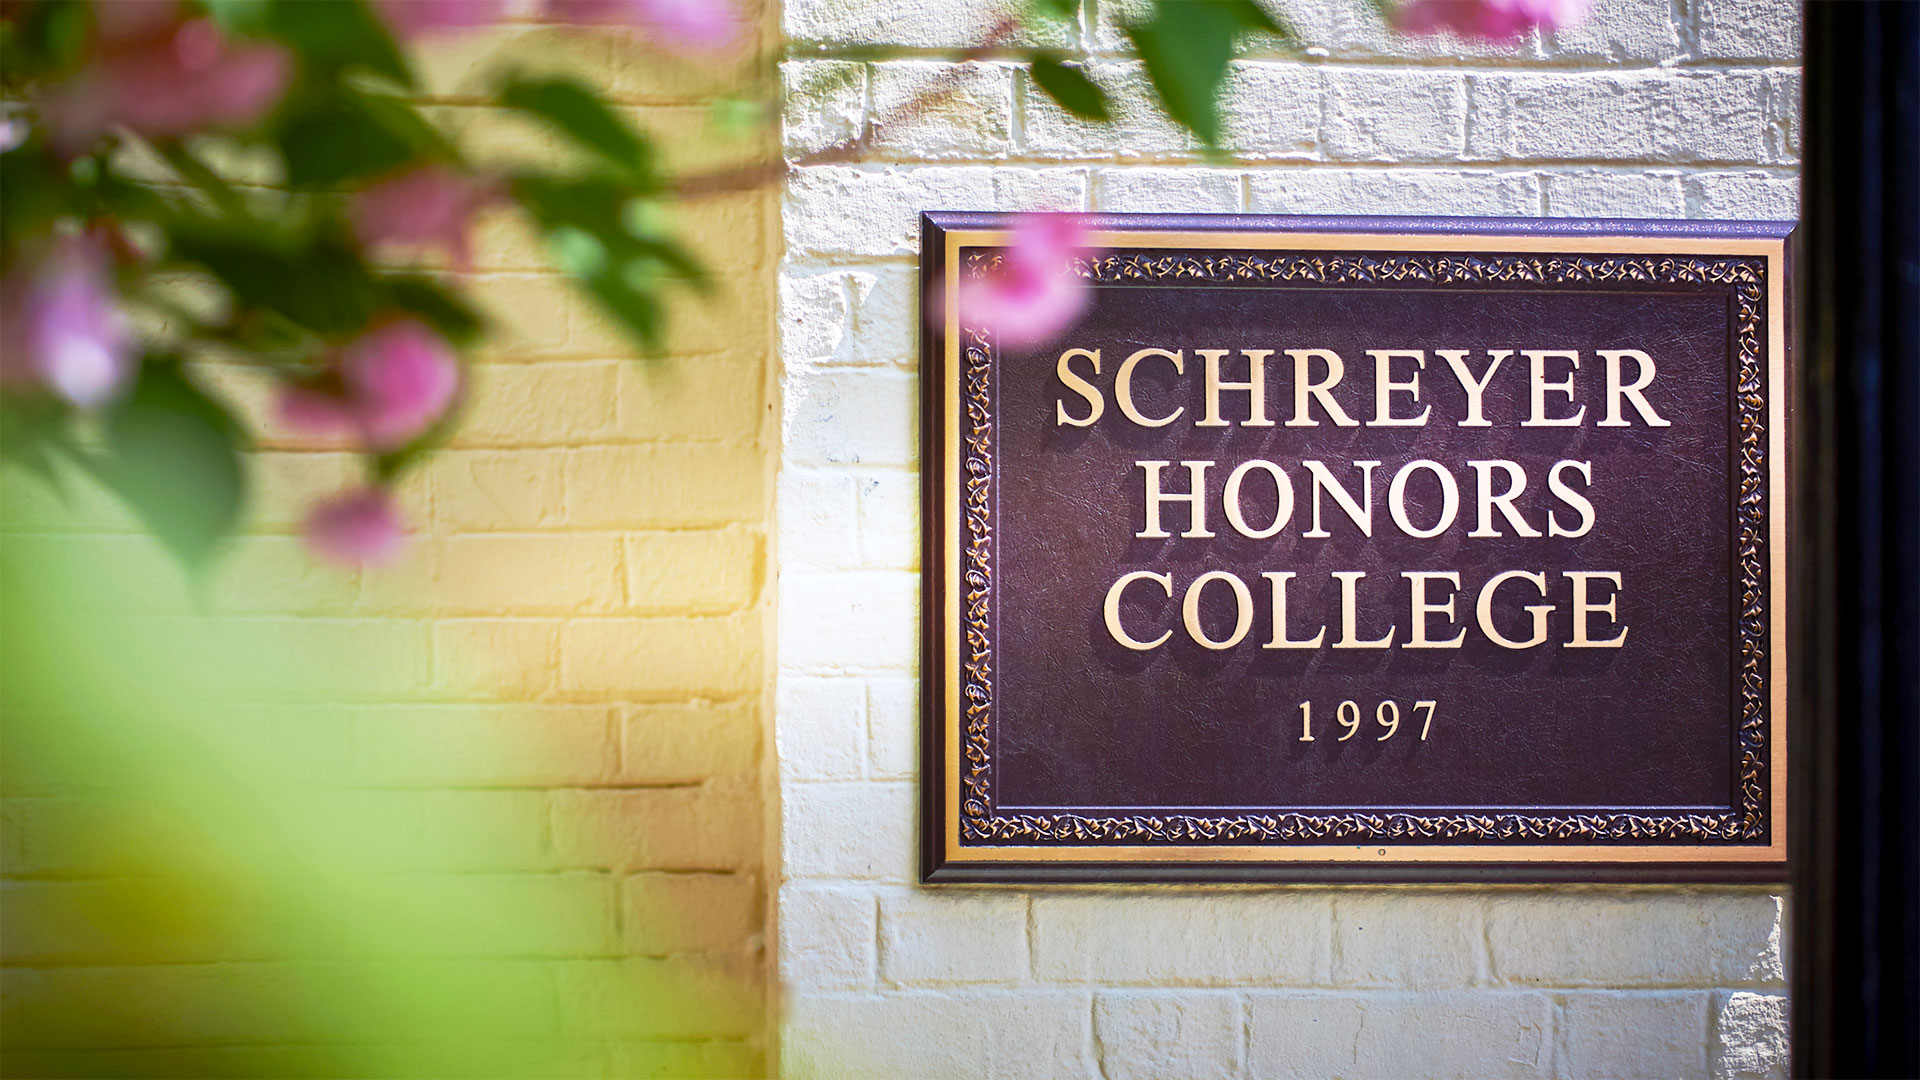 Schreyer Honors College sign at Atherton Hall